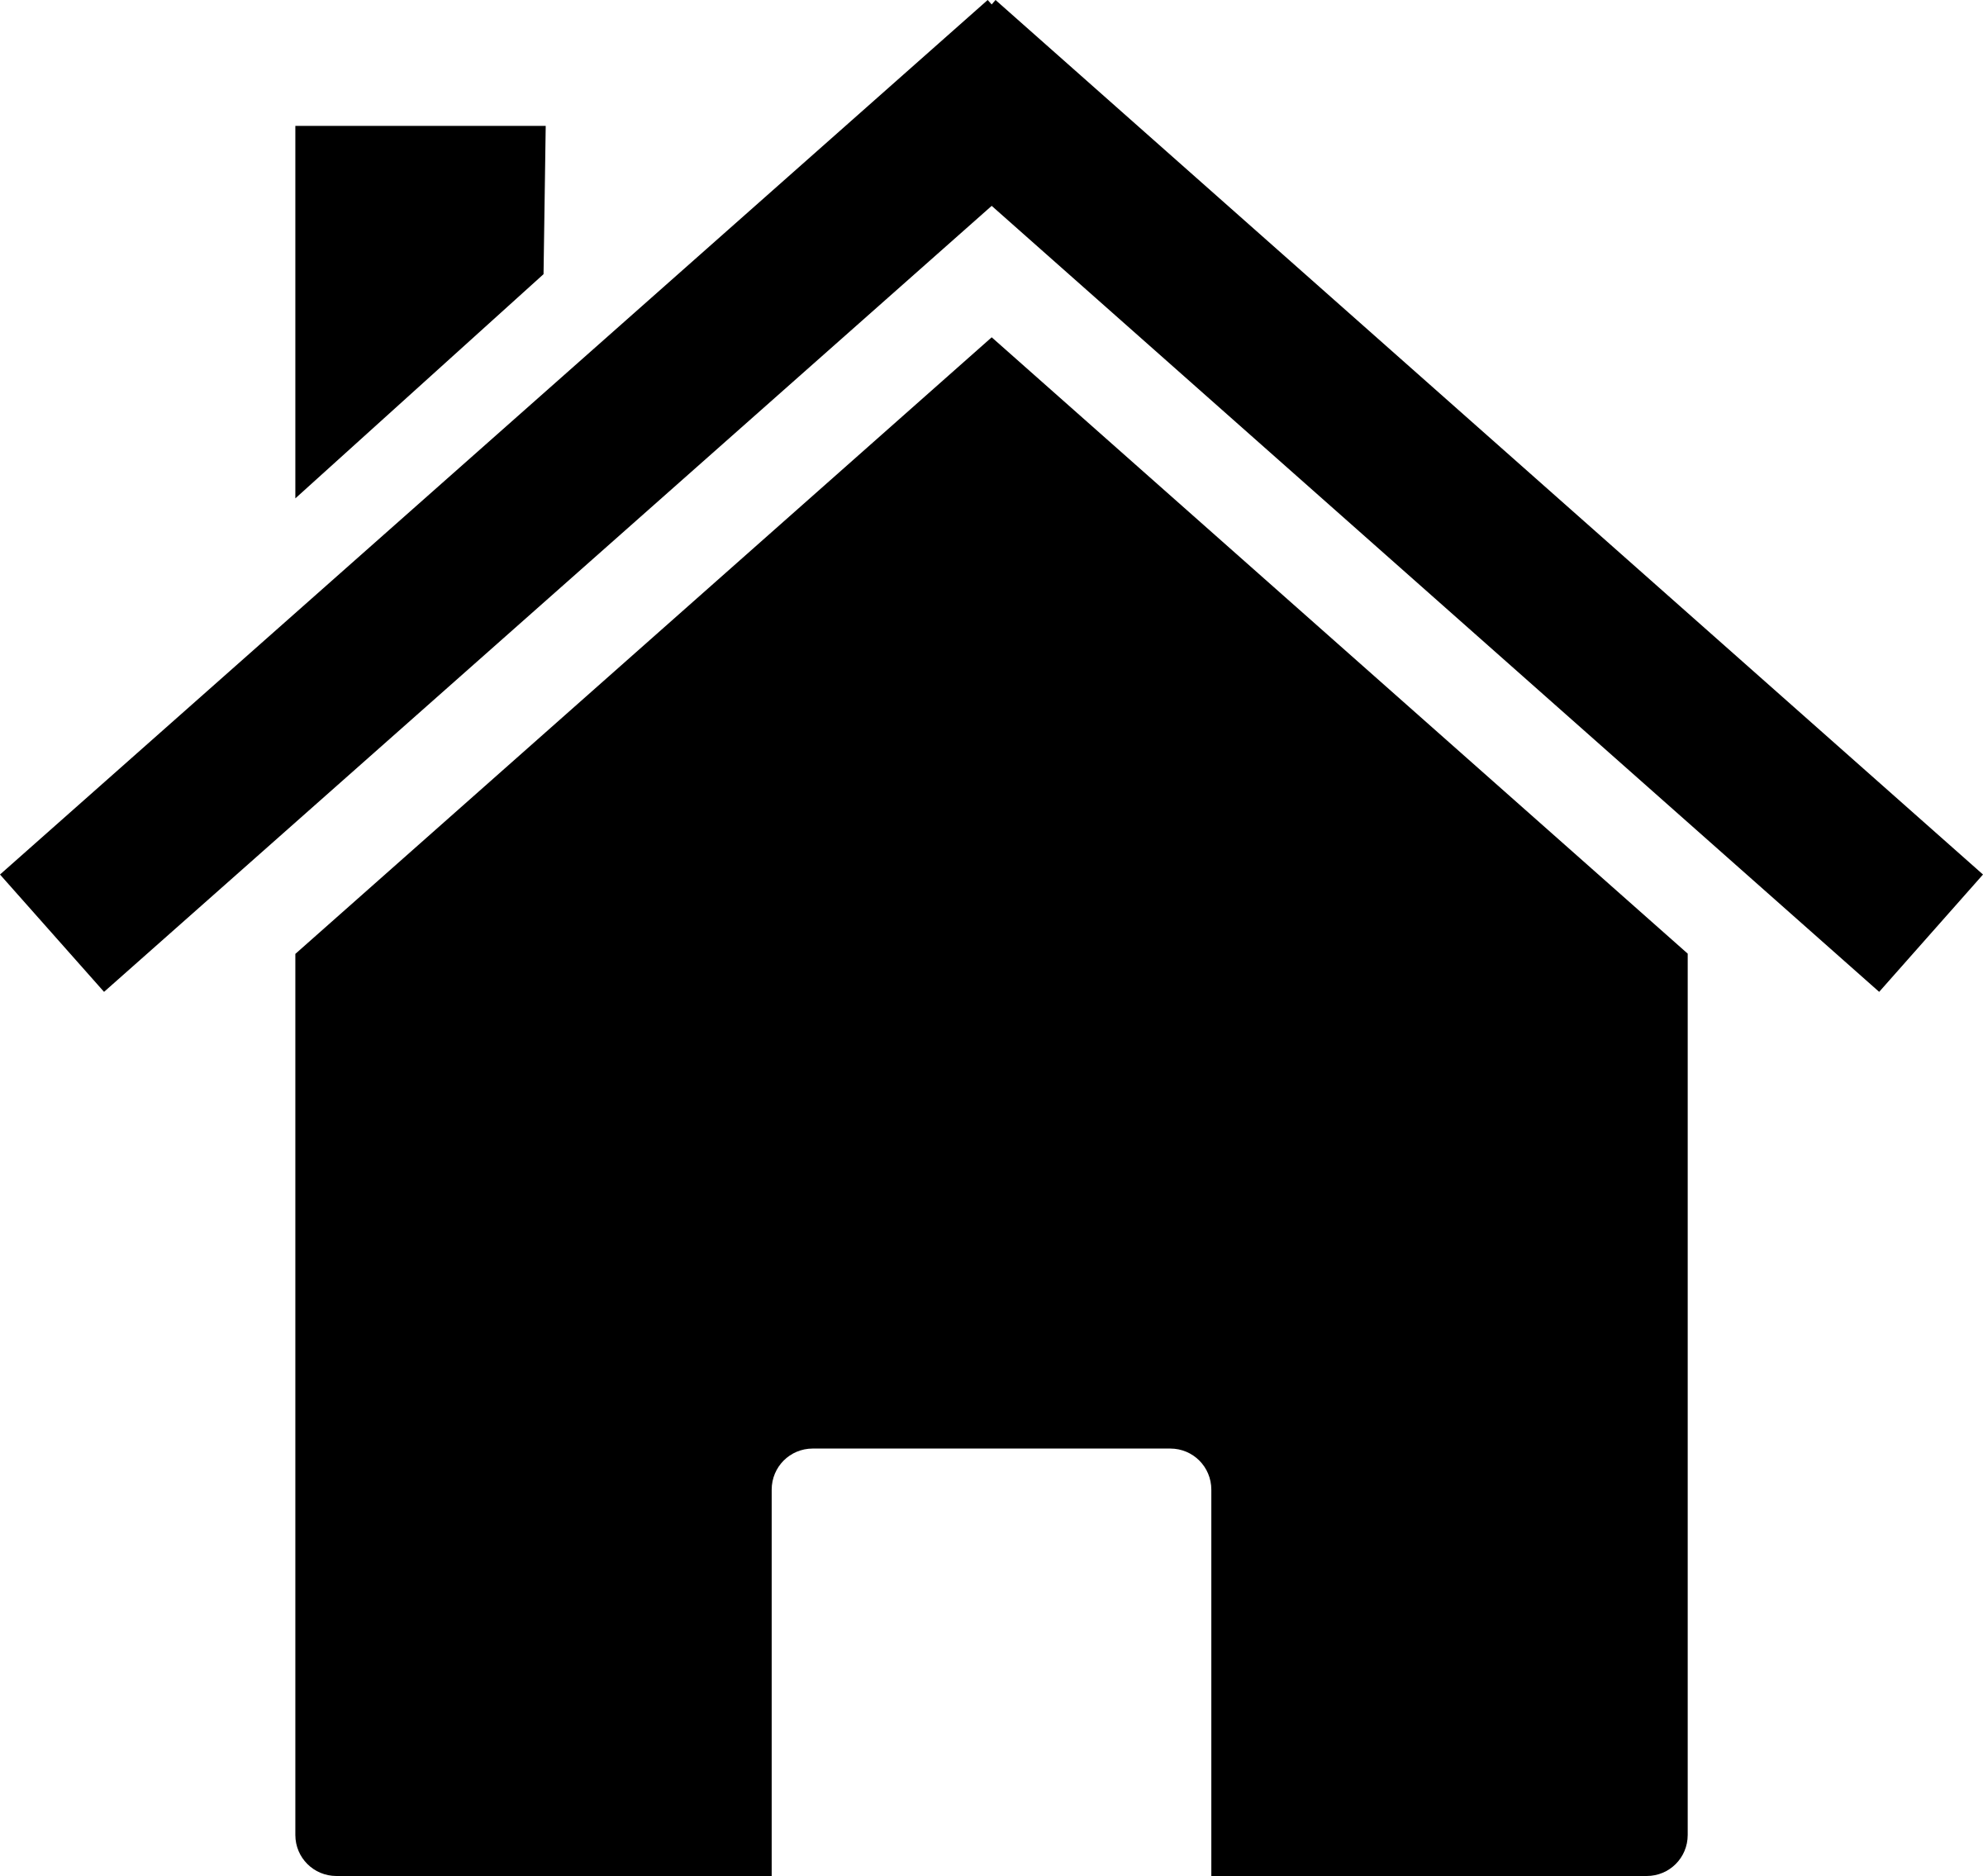 Mansion clipart home StickPNG Icon Chimney Home Home